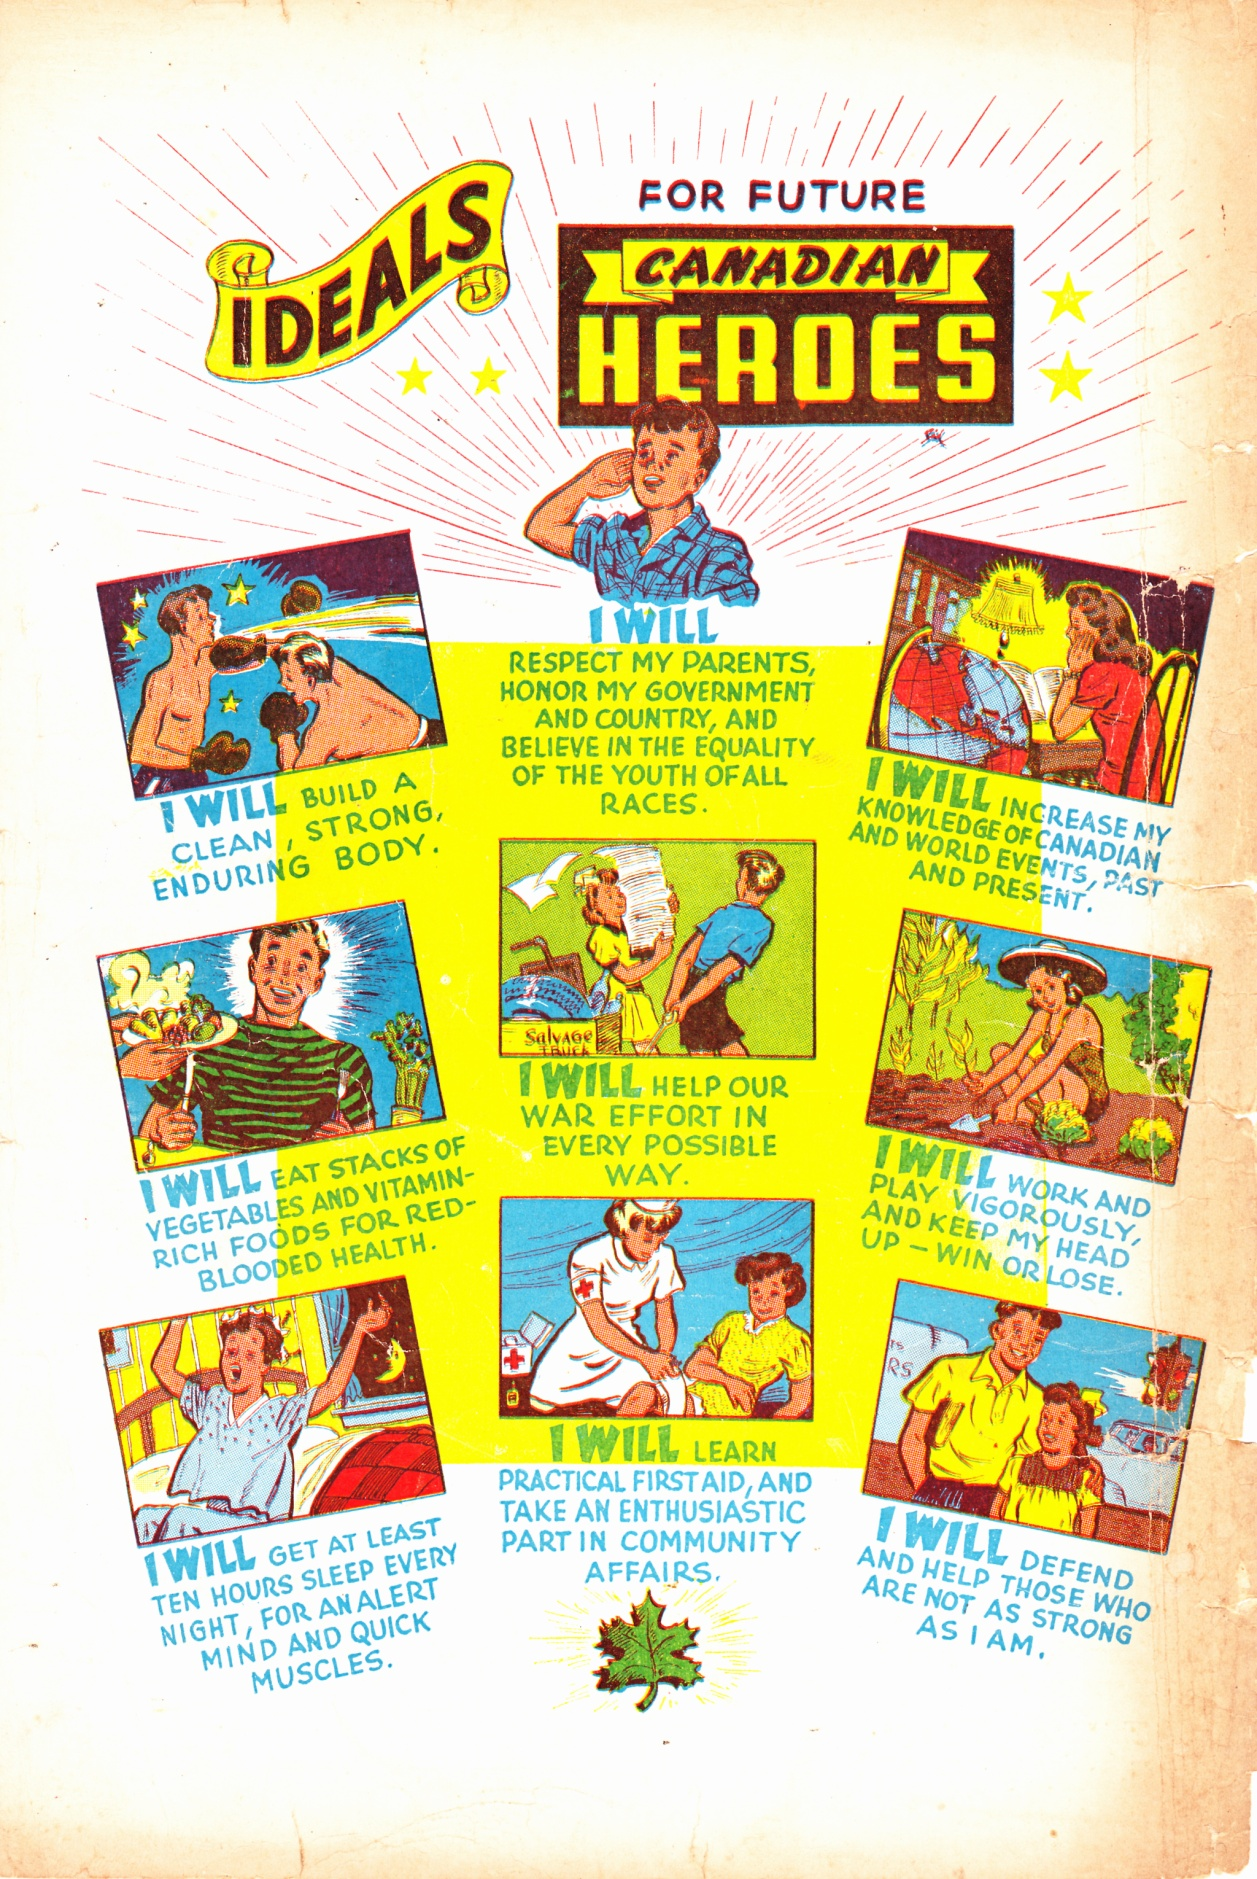 C:\Users\Robert\Documents\CARTOONING ILLUSTRATION ANIMATION\IMAGE COVER PERIODICAL\CANADIAN HEROES,1-1, Oct. 1942, bc.jpg